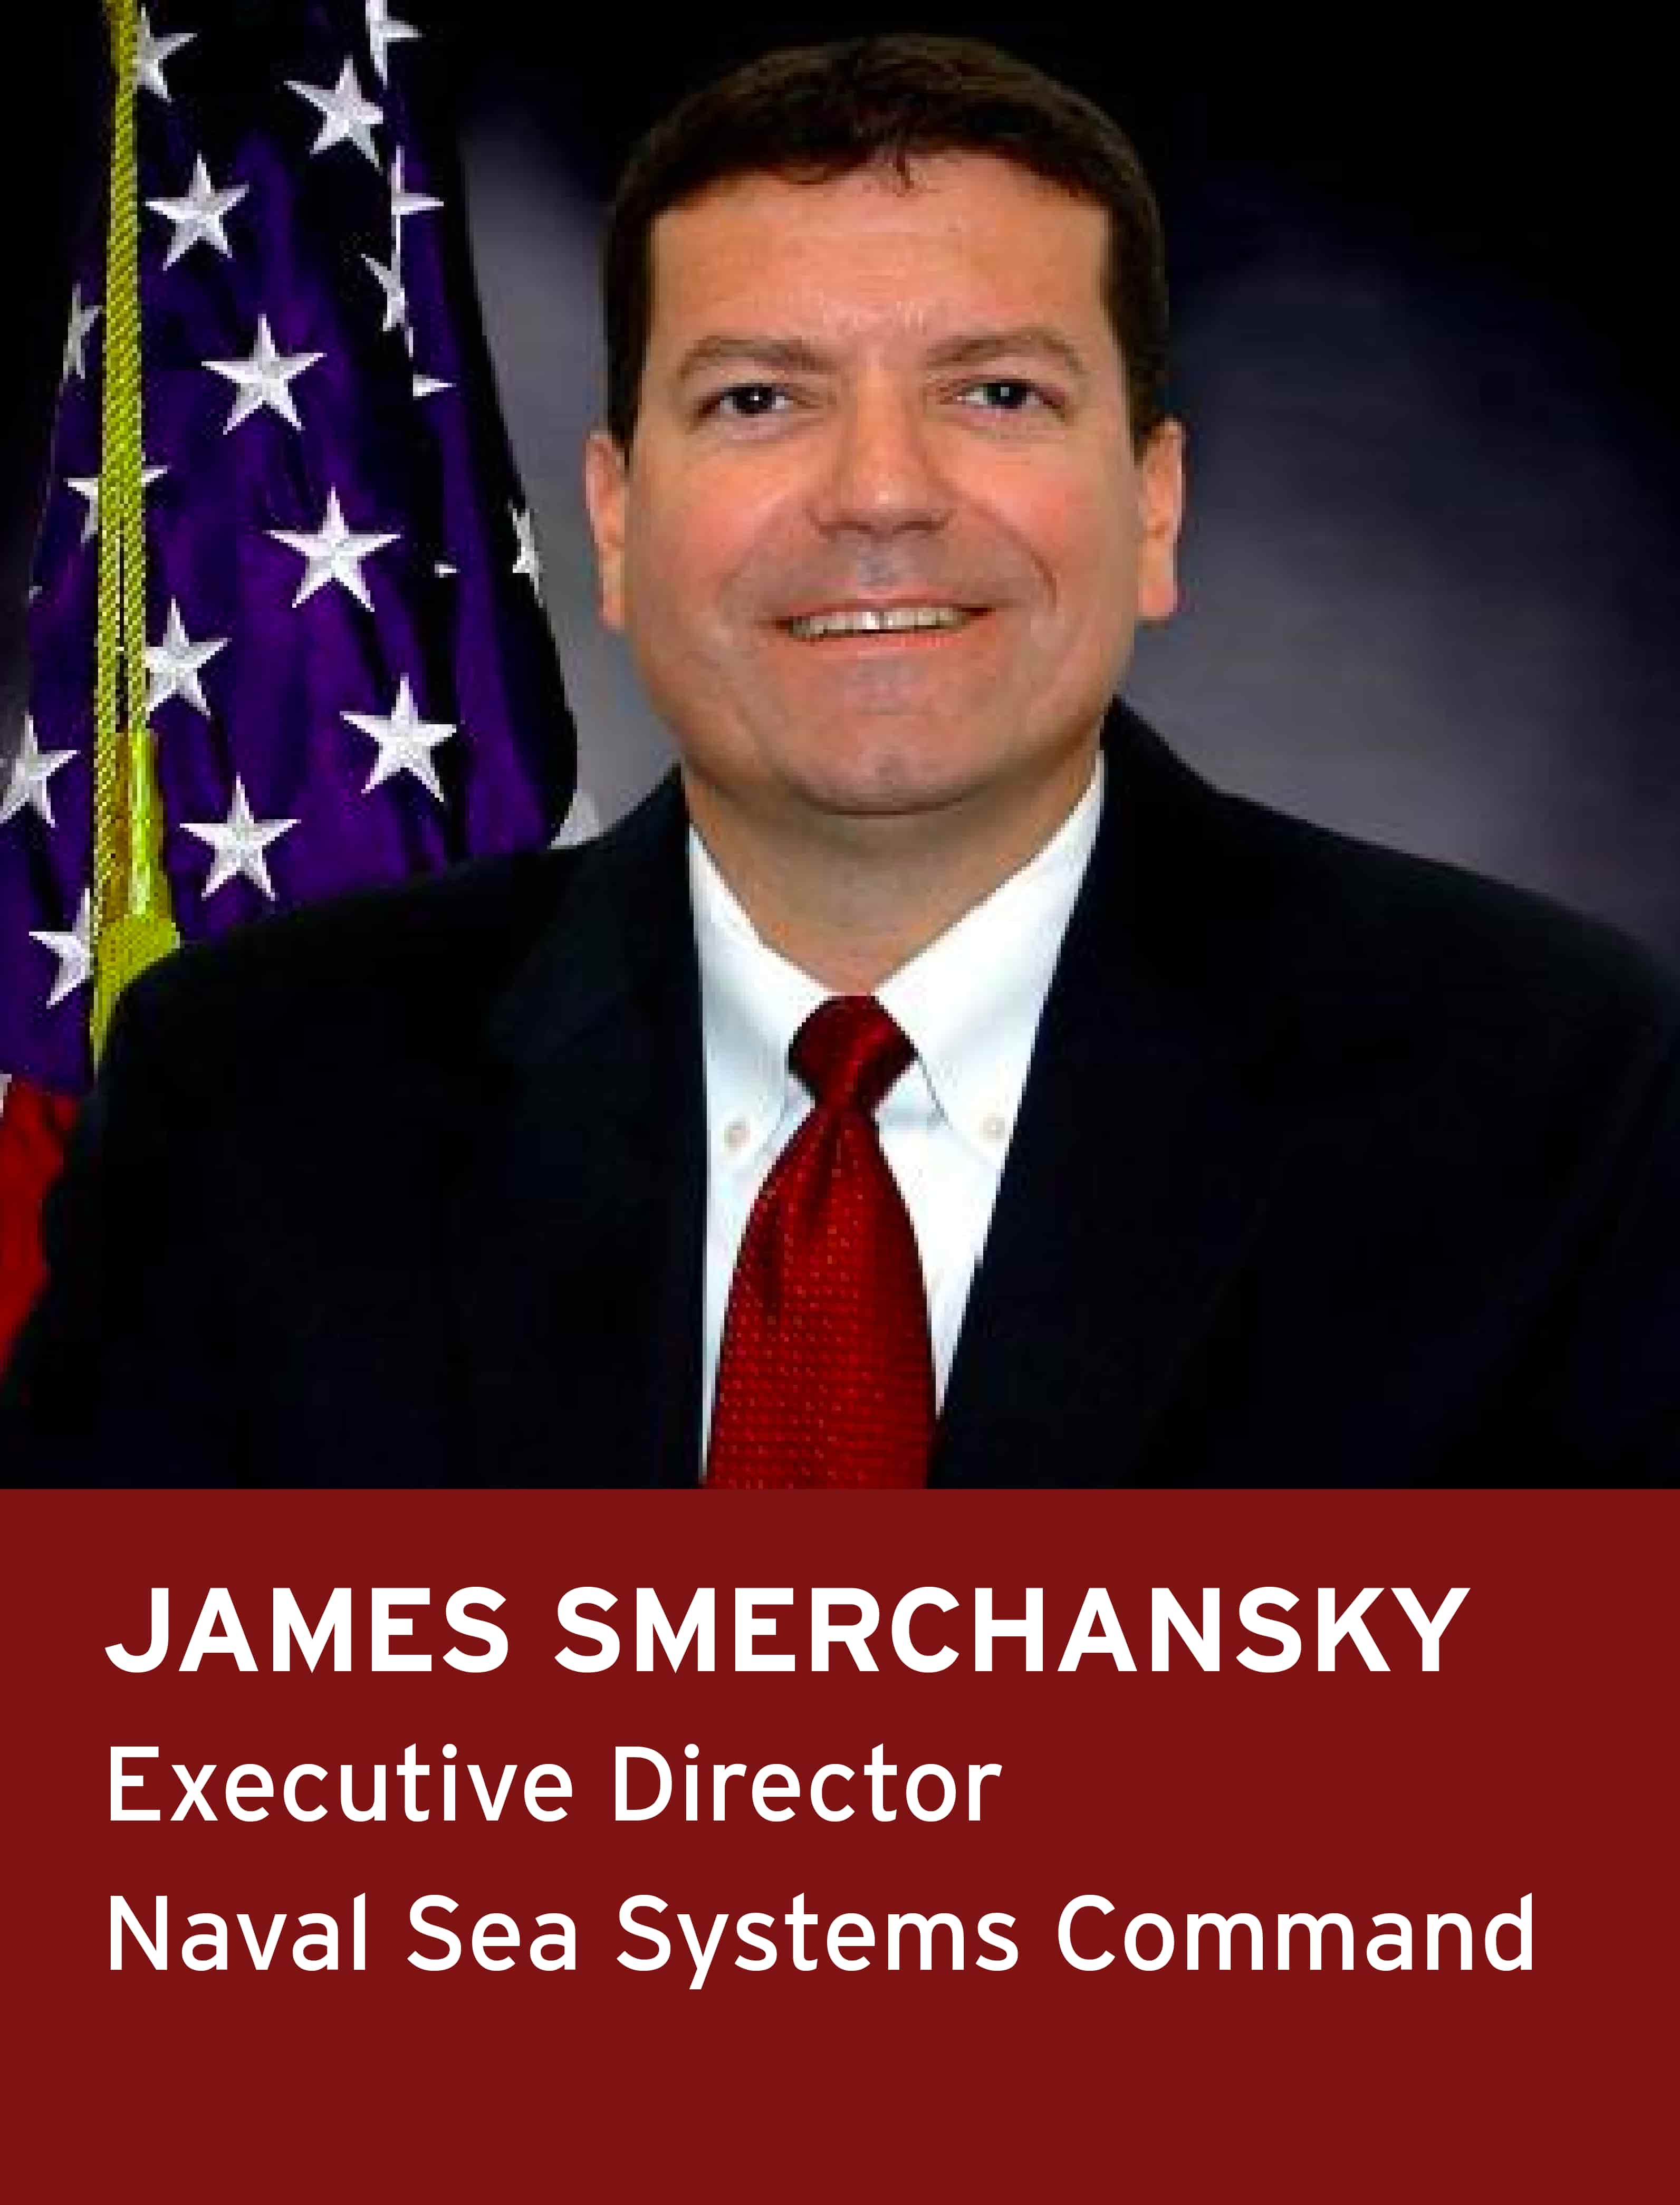 James Smerchansky, Executive Director, Naval Sea Systems Command